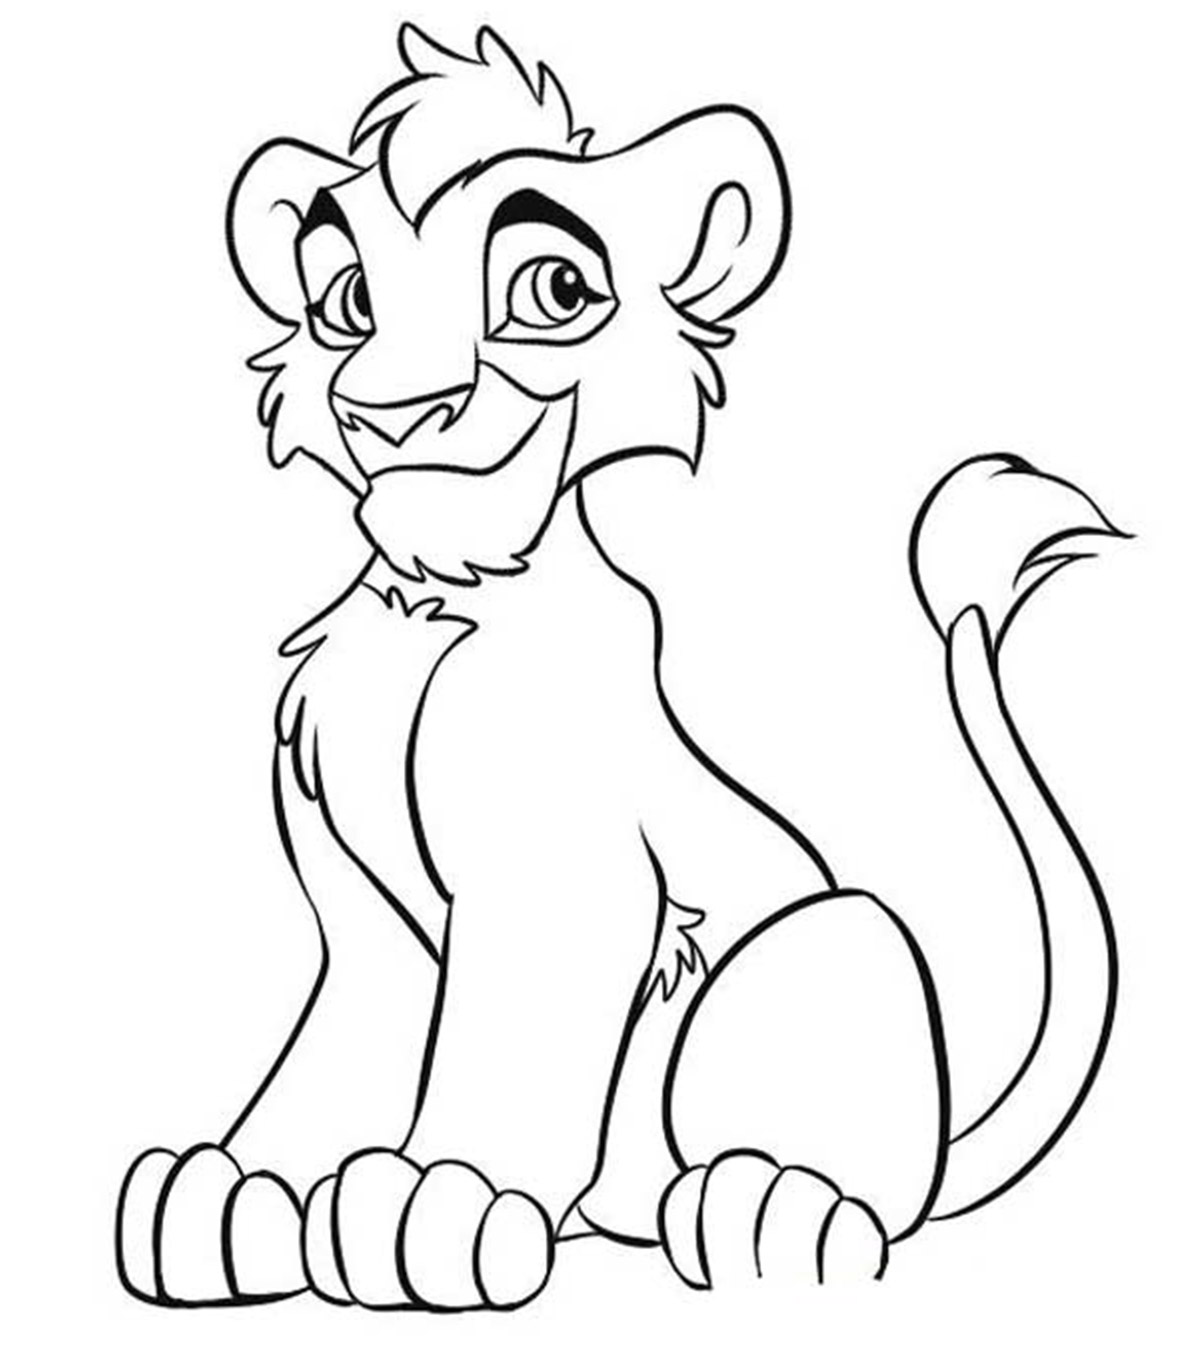 Free Timon And Pumbaa Coloring Pages, Download Free Clip Art, Free ... | 1350x1200